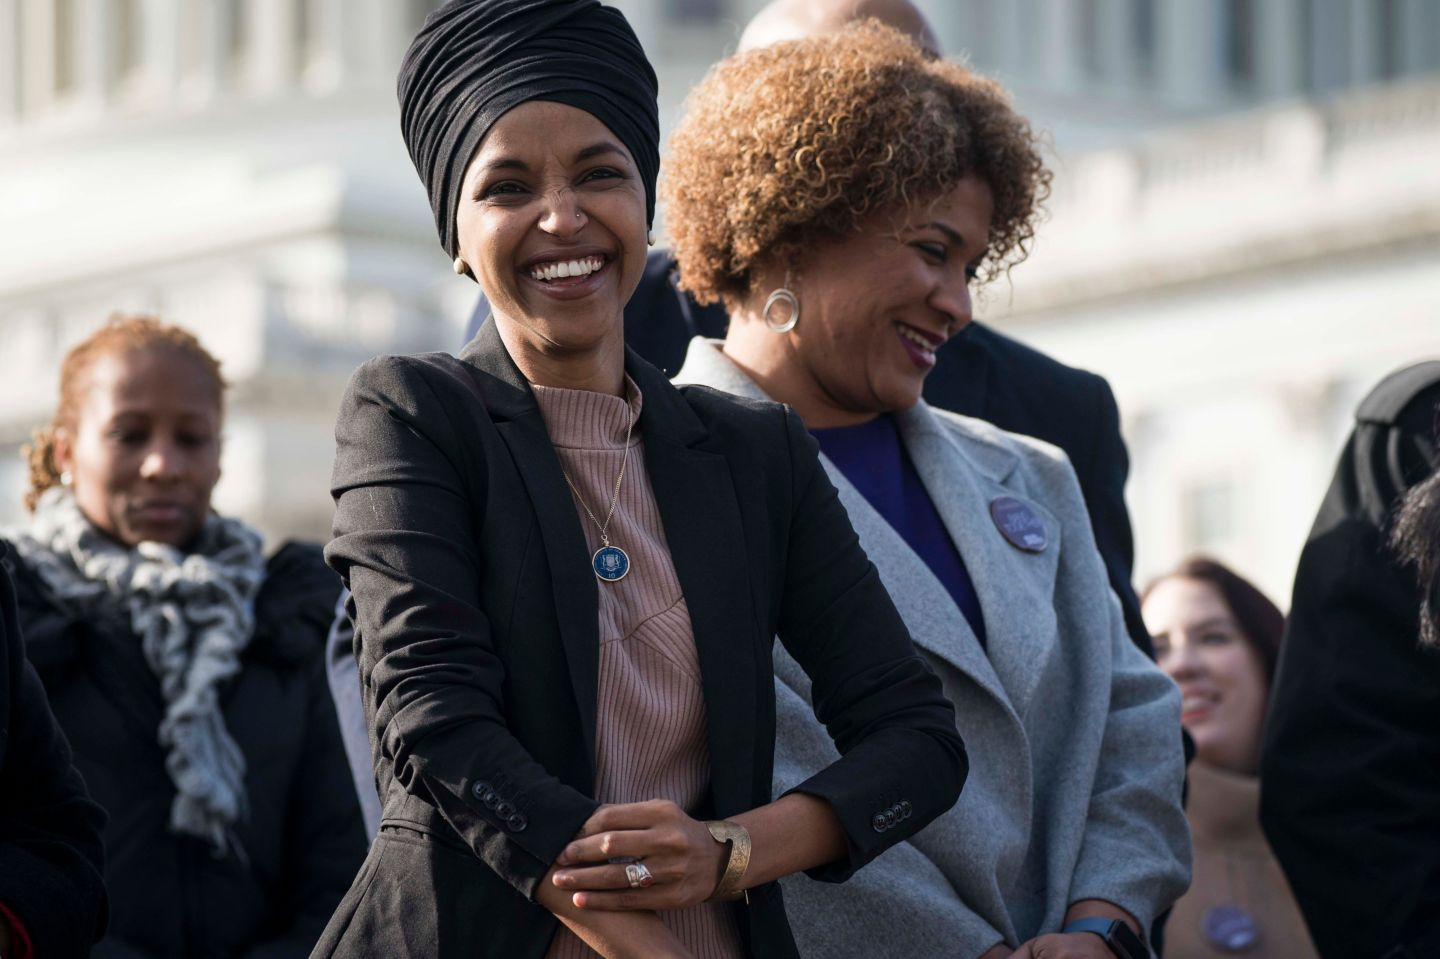 Ilhan Omar Pitches A New 'Progressive Baseline' For U.S. Foreign Policy